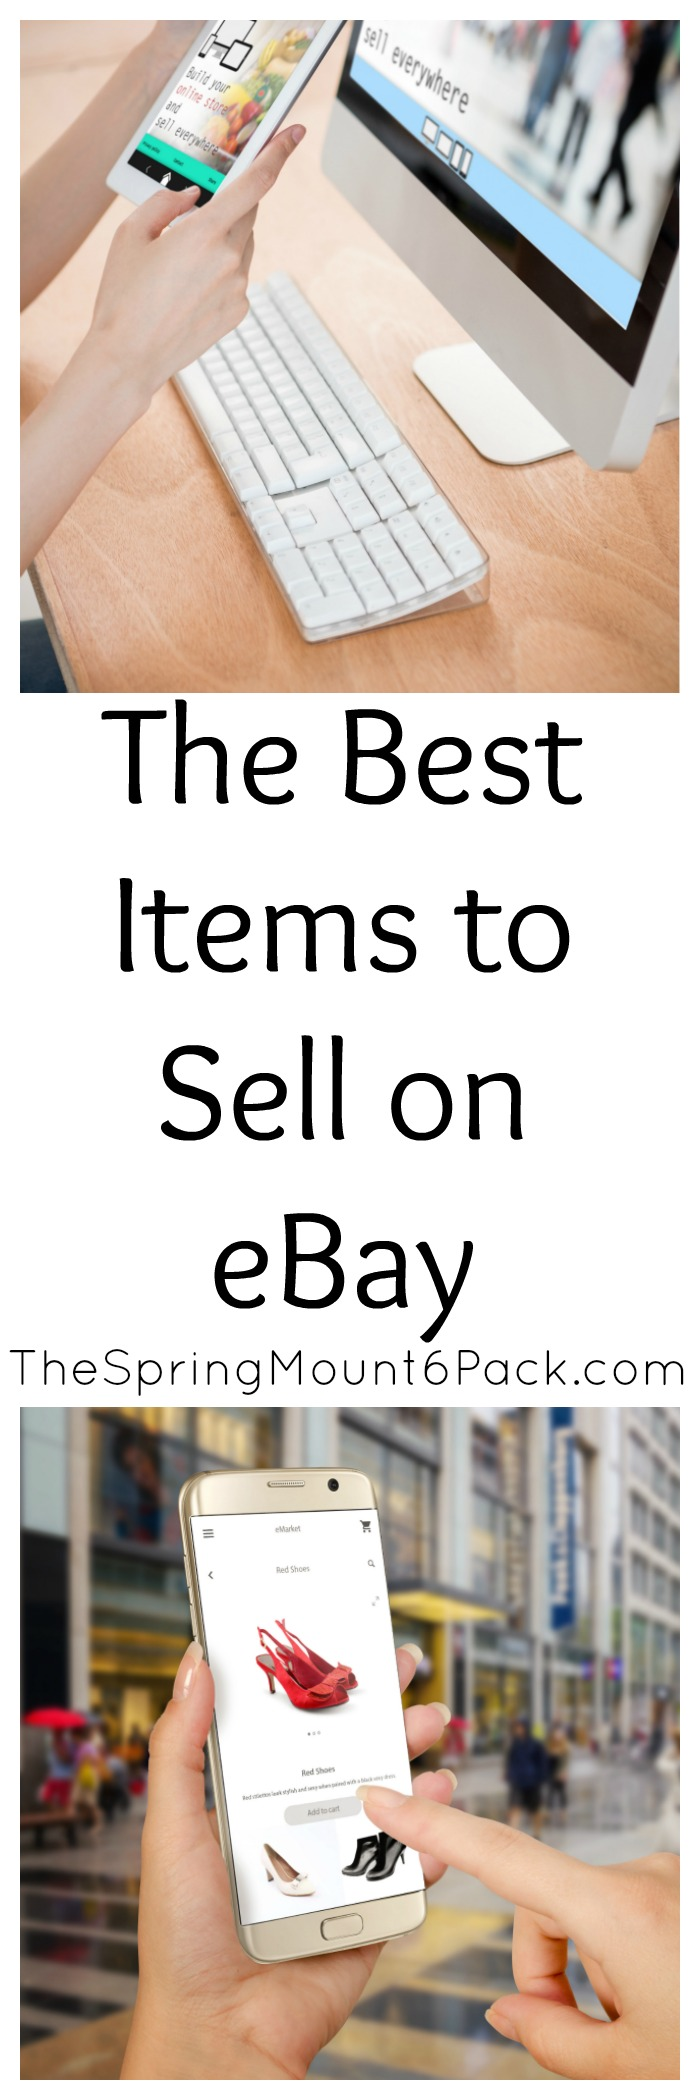 The Best Items to Sell on eBay - Our WabiSabi Life